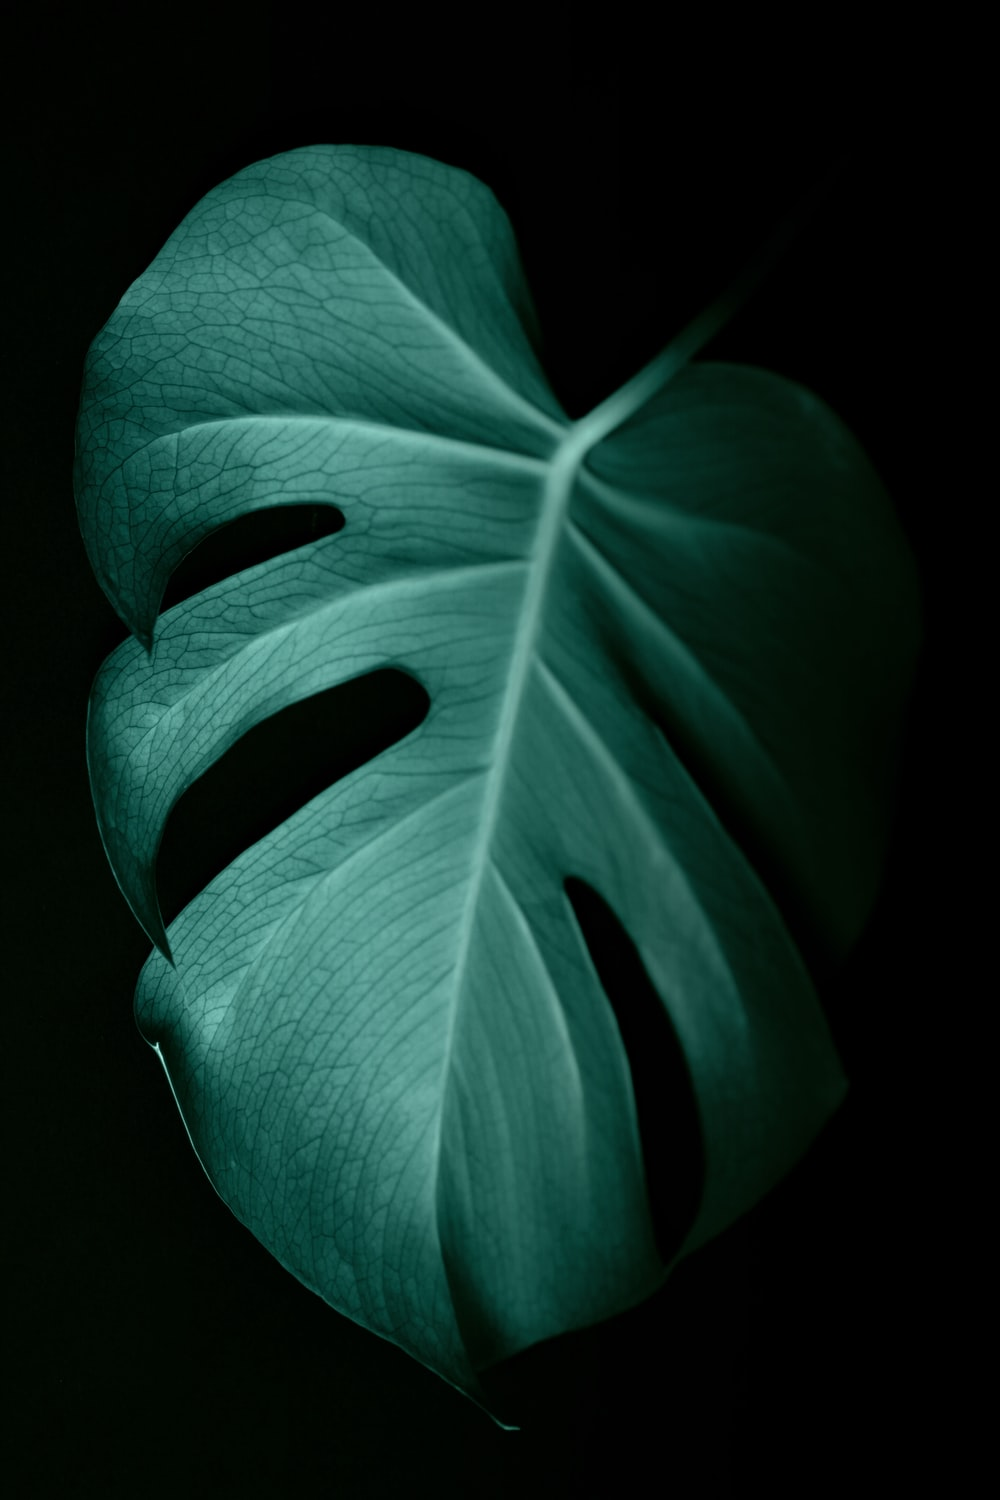 green leaf in dark surface